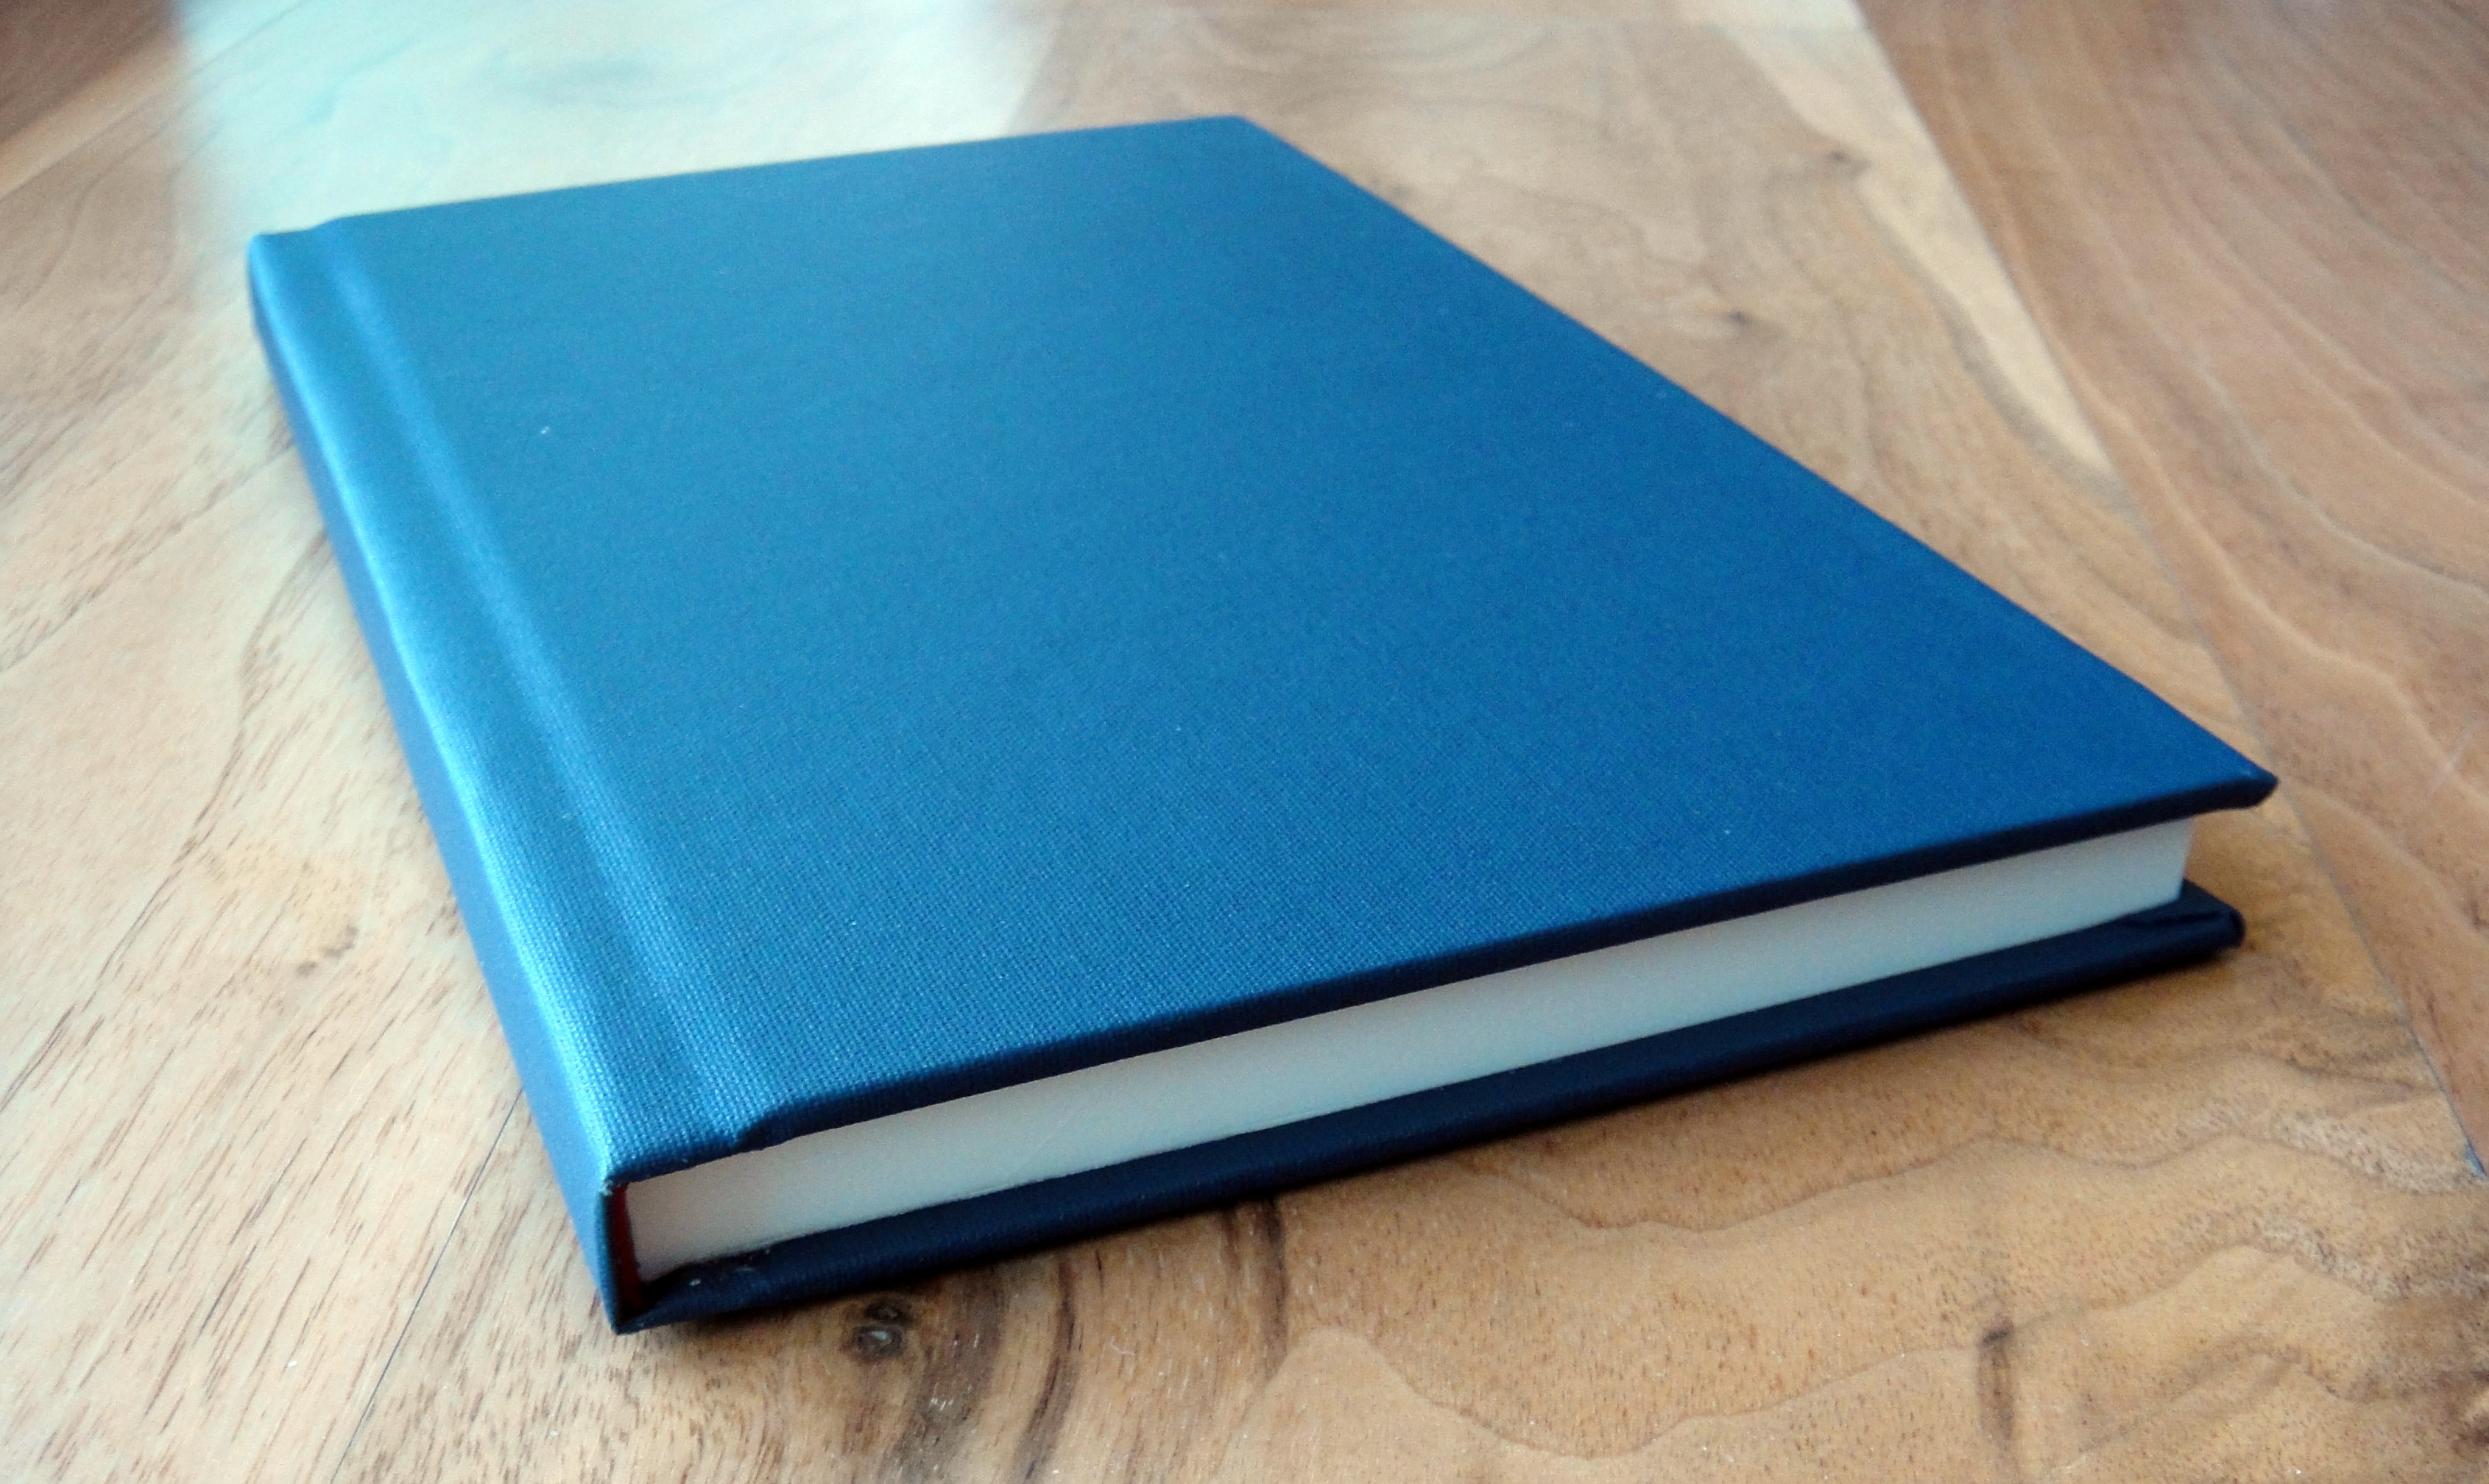 Tomoe River Notebook Review The Unroyal Warrant